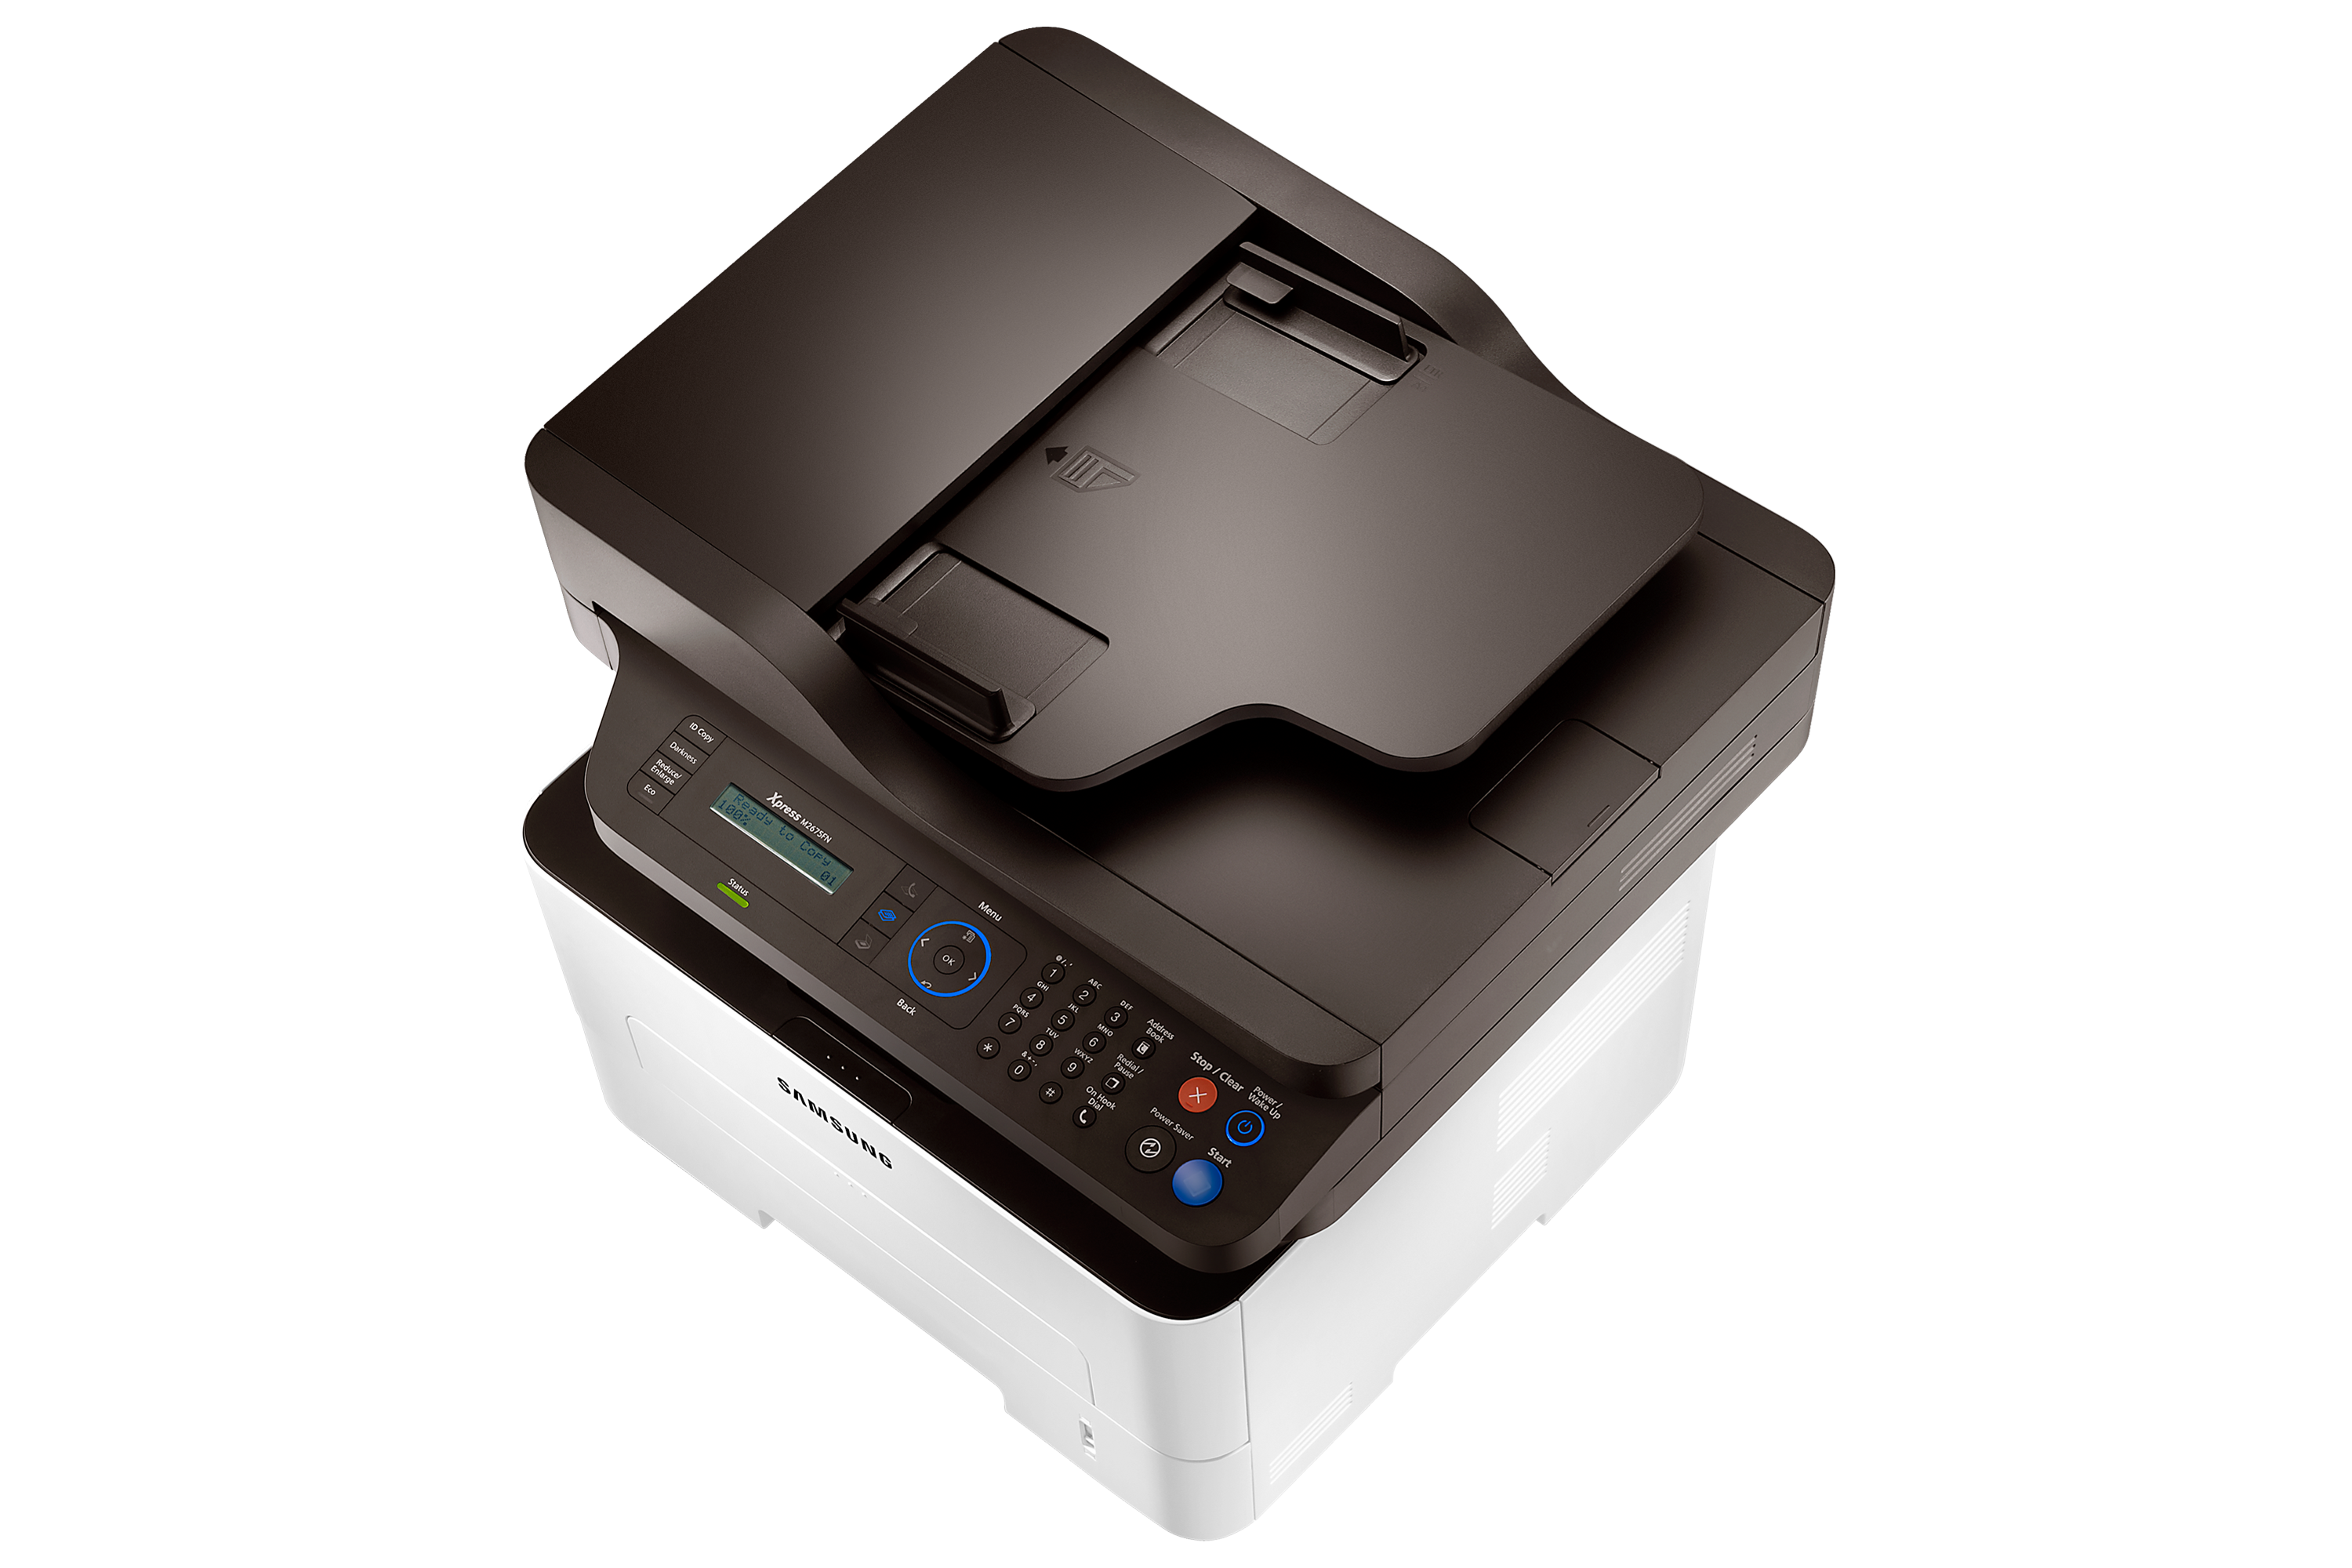 M2675FN 26PPM Mono Laser Multifunction Printer